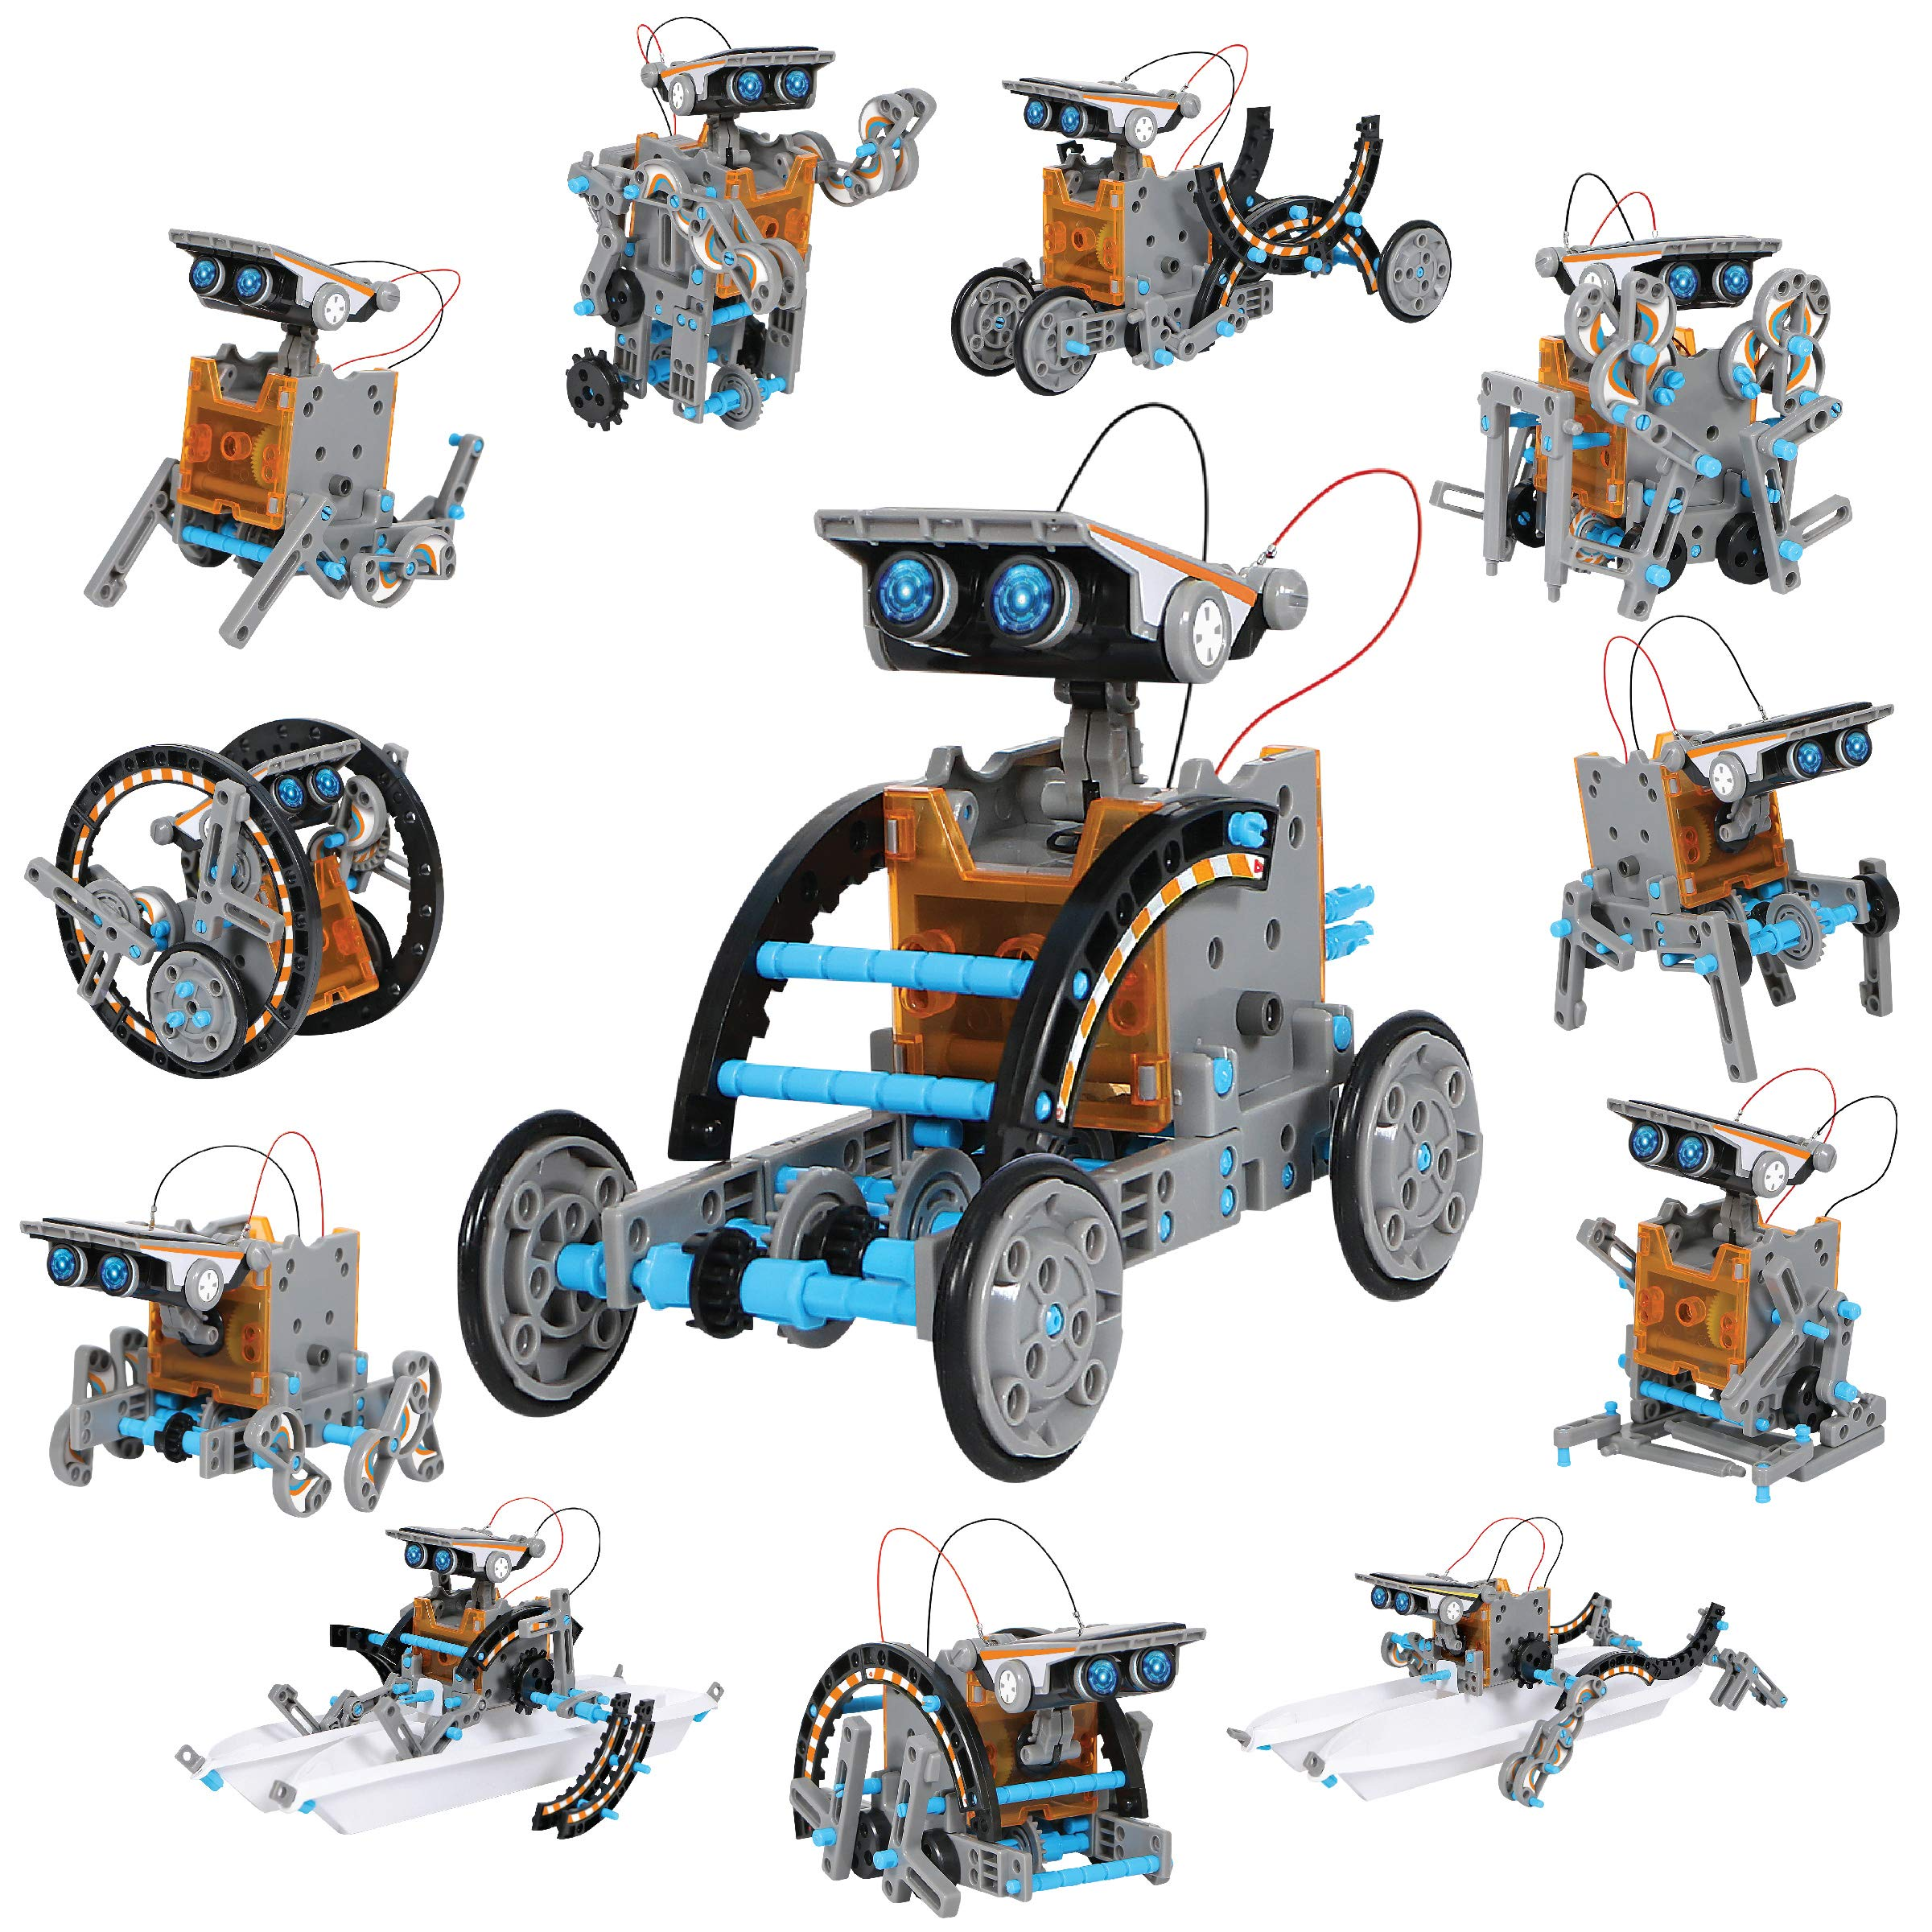 DISCOVERY KIDS Mindblown STEM 12-in-1 Solar Robot Creation 190-Piece Kit with Working Solar Powered Motorized Engine and Gears, Construction Engineering Set by Discovery Kids